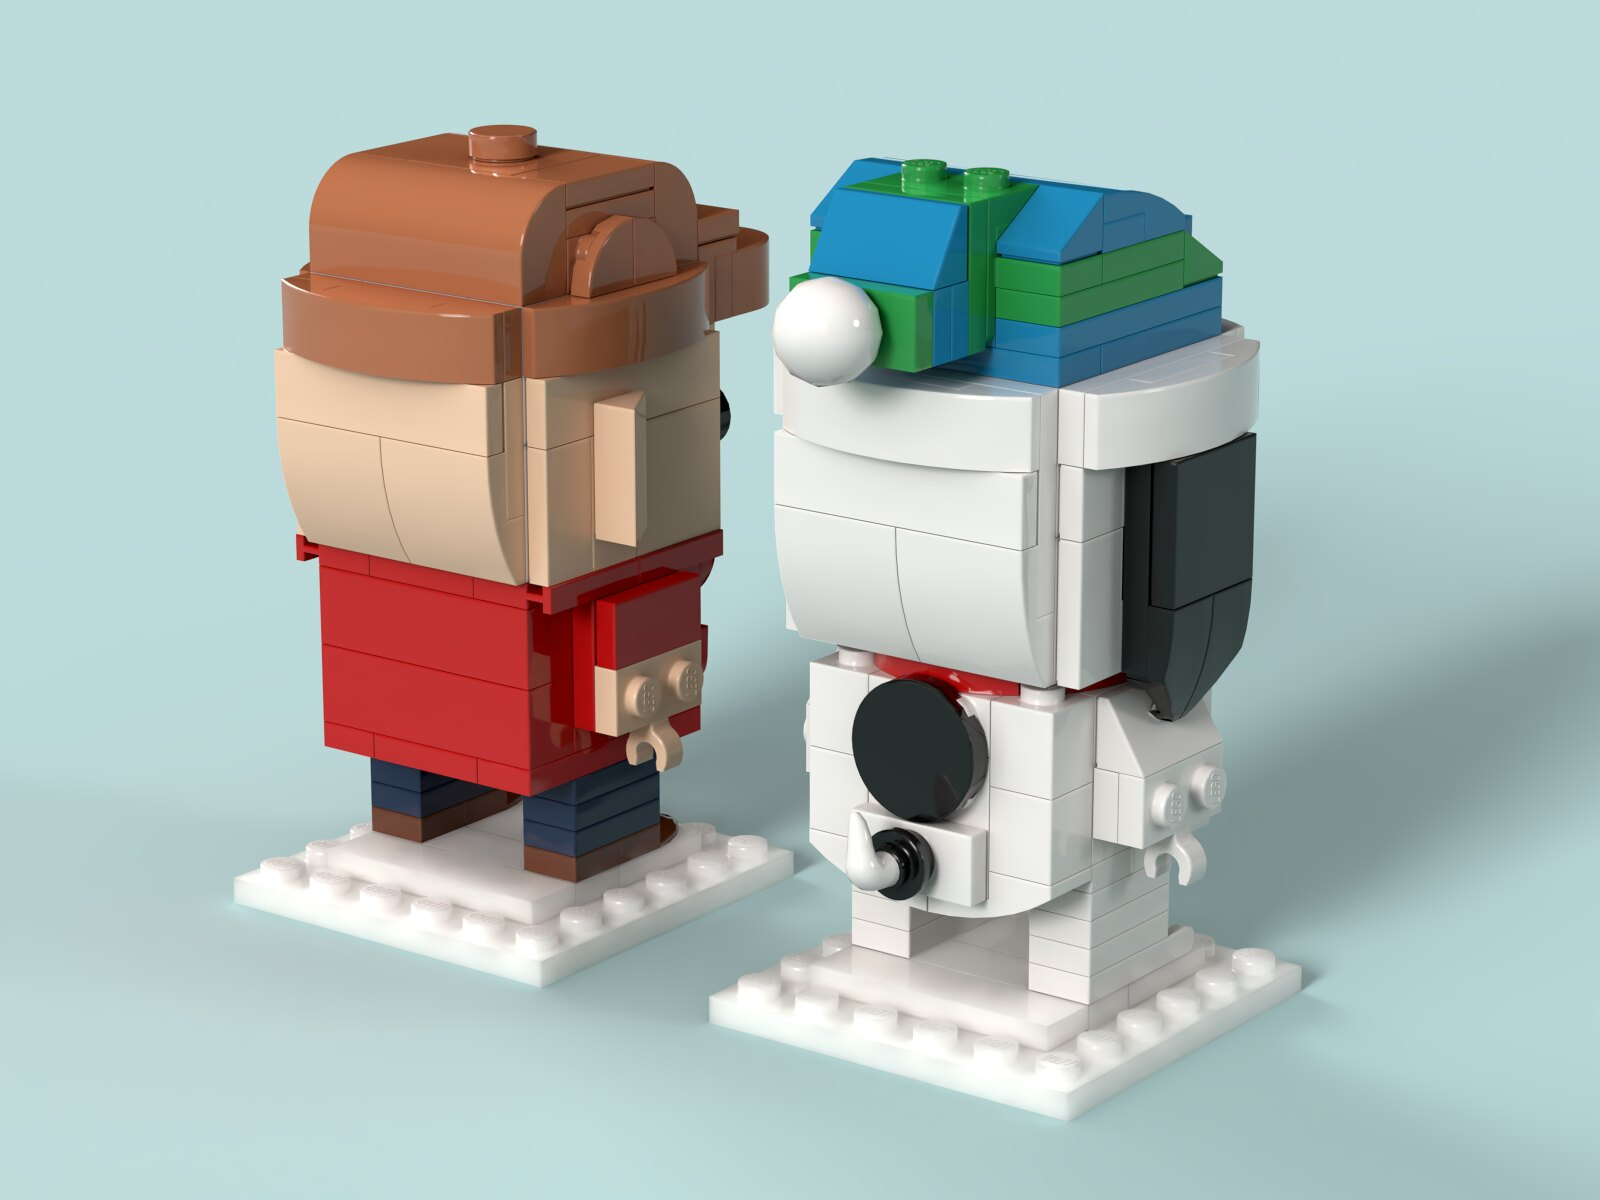 LEGO BrickHeadz Charlie Brown Christmas